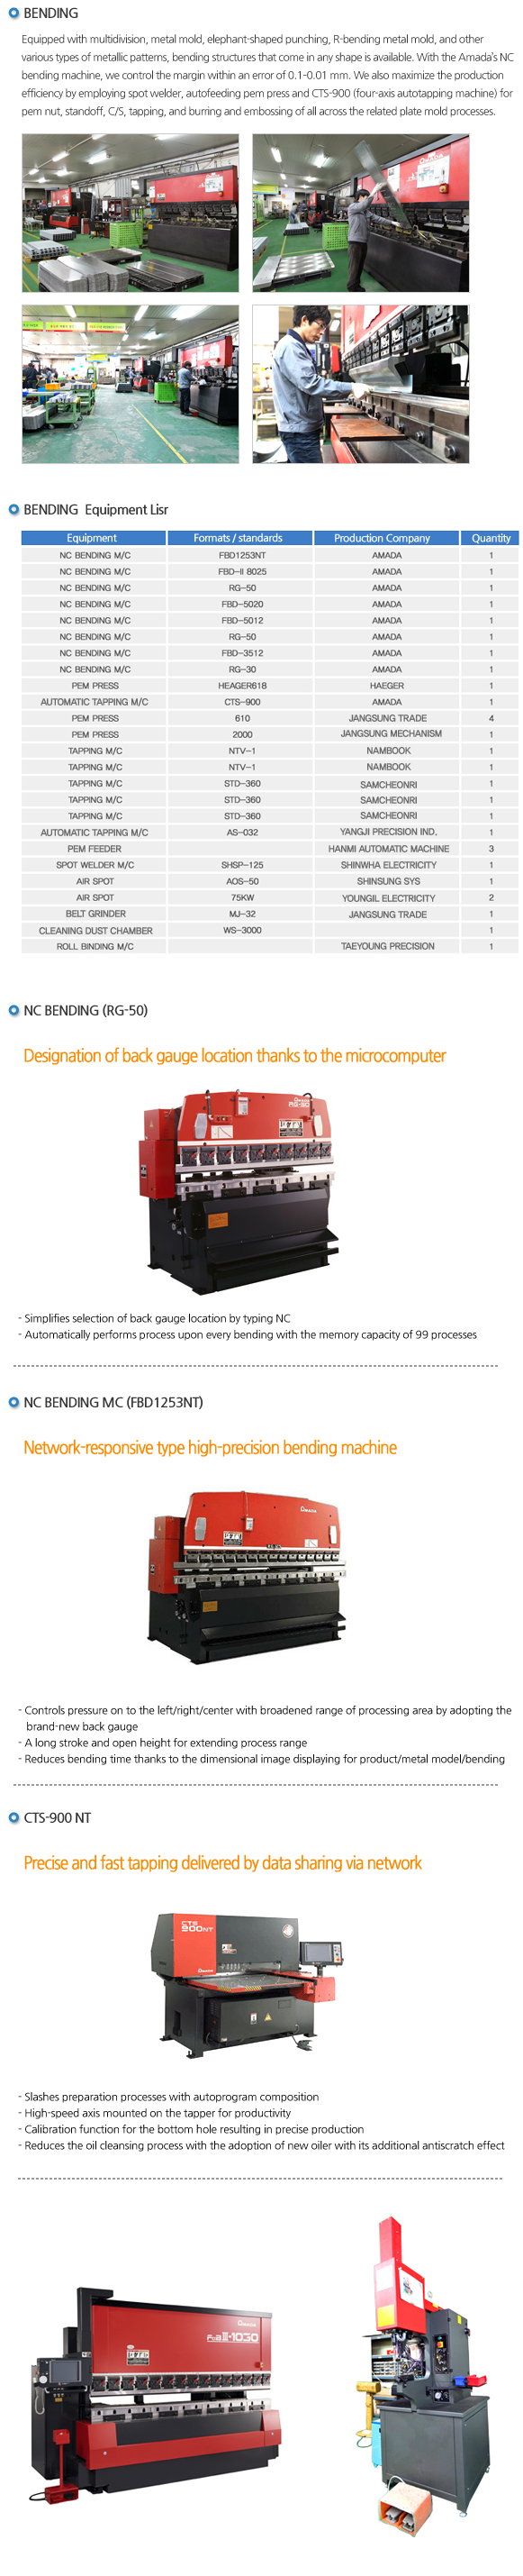 Kook-min Precision - Status of Facilities Products & Production